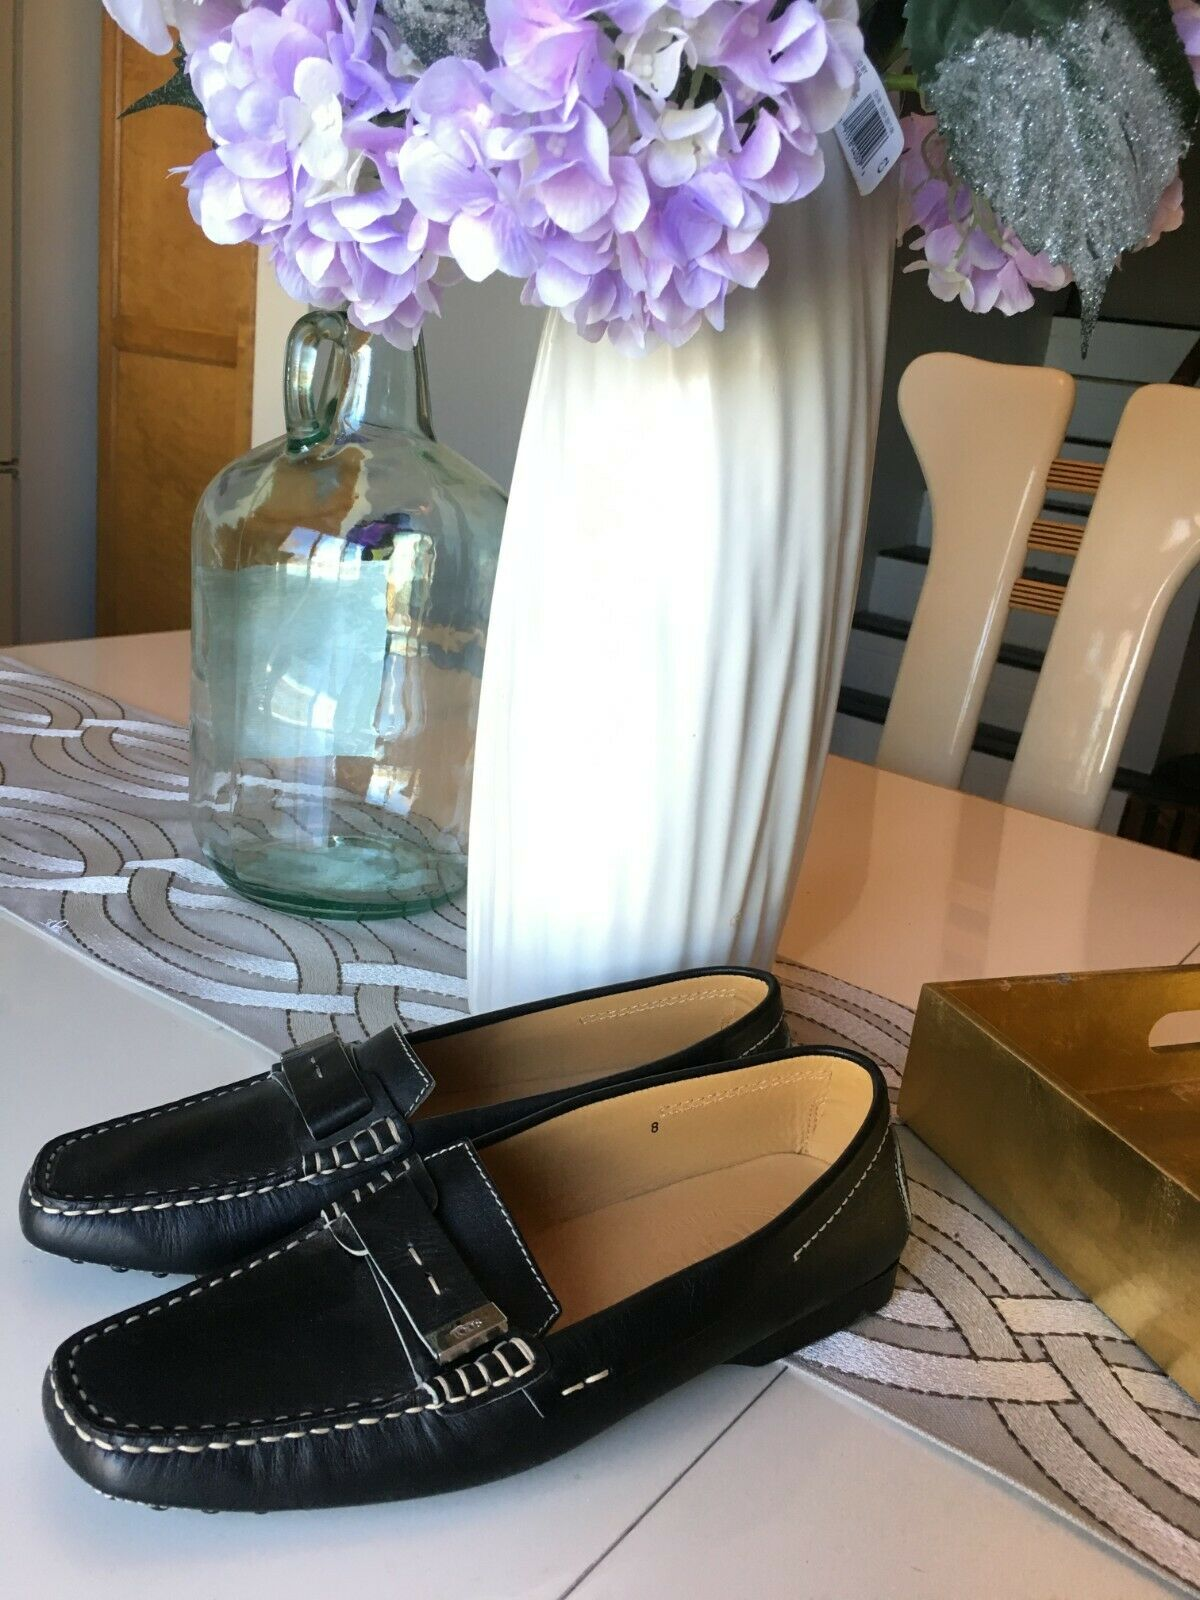 Tods Driving Moccasin Black Leather Women's size 8 NEW